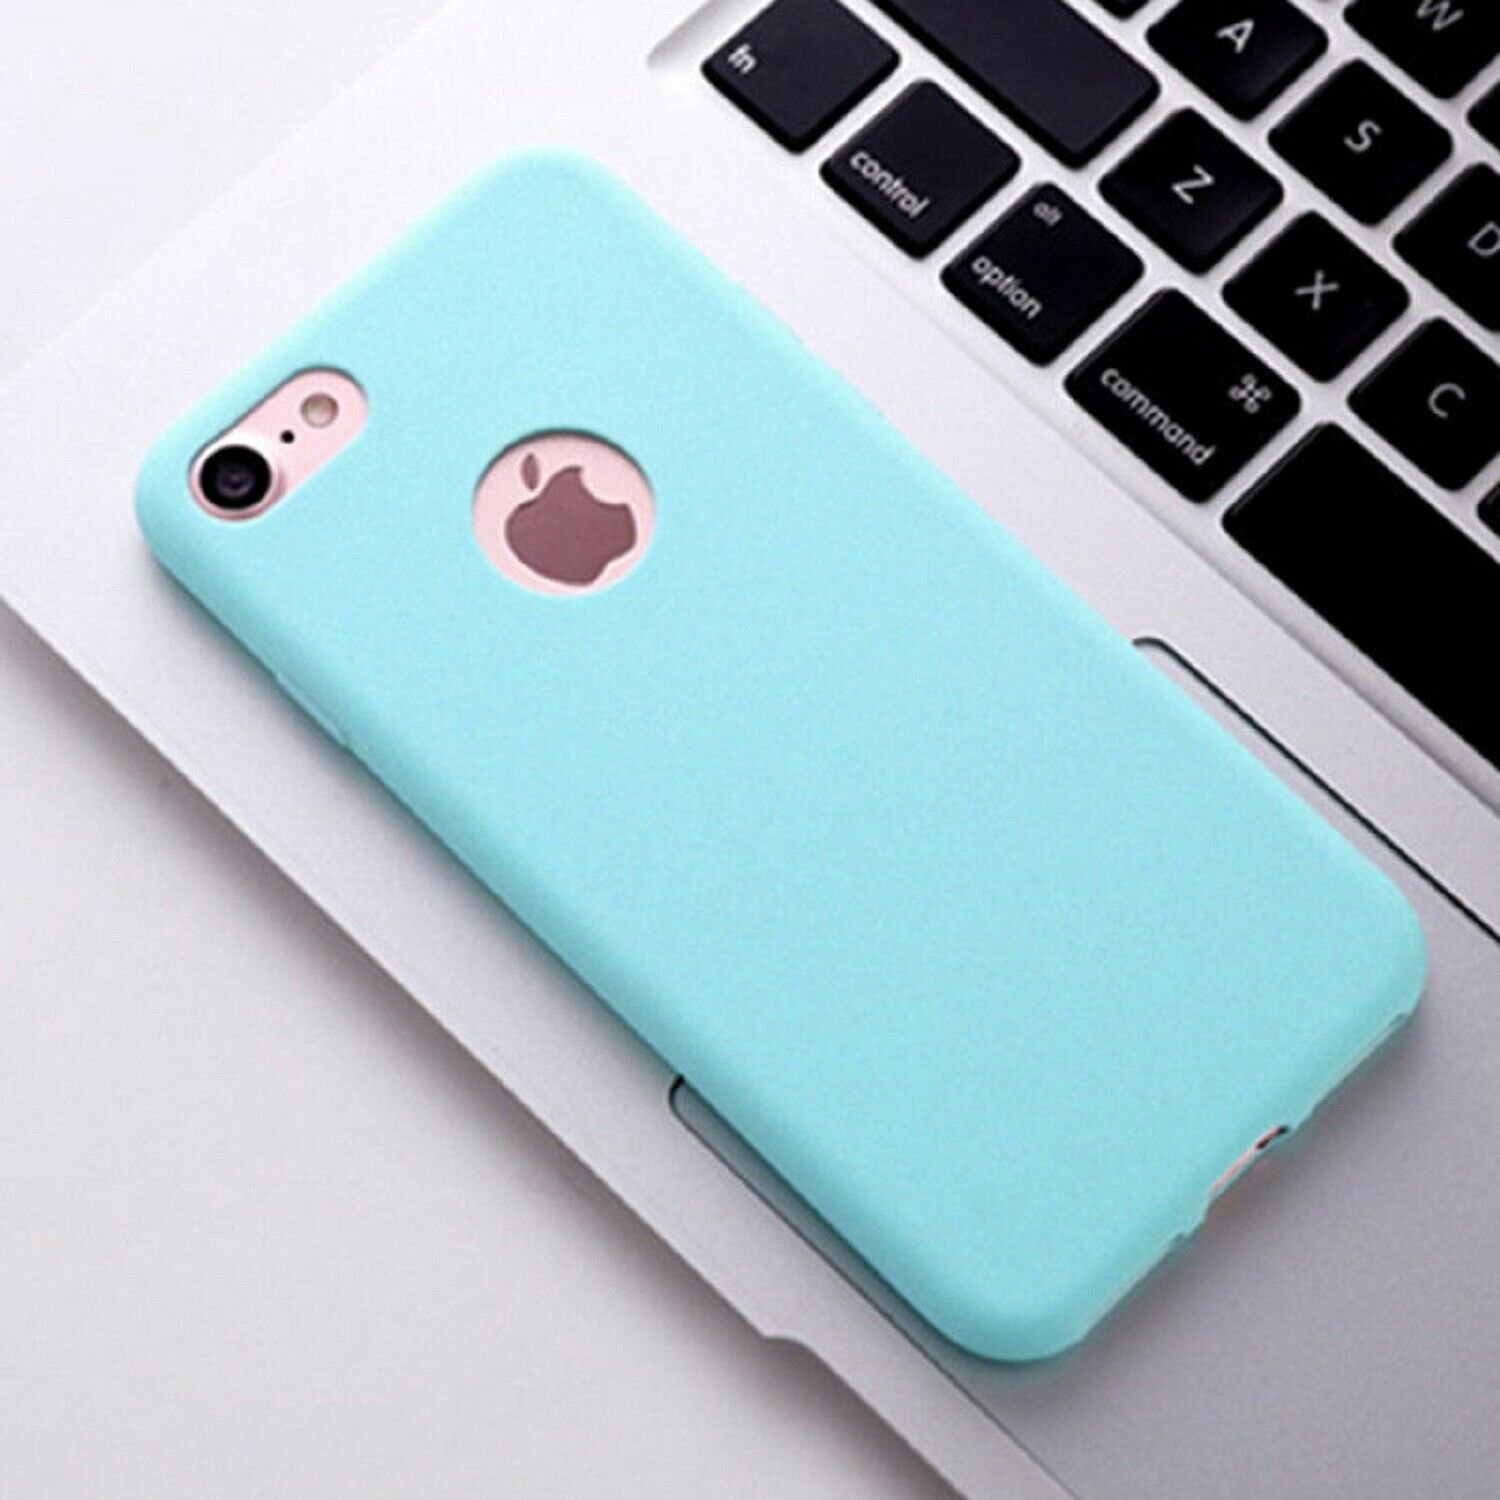 Funda Carcasa Case Iphone Silicona Flexible Ultra Fina Tpu Suave Compatible con iphone 8  Azul Claro Agujero